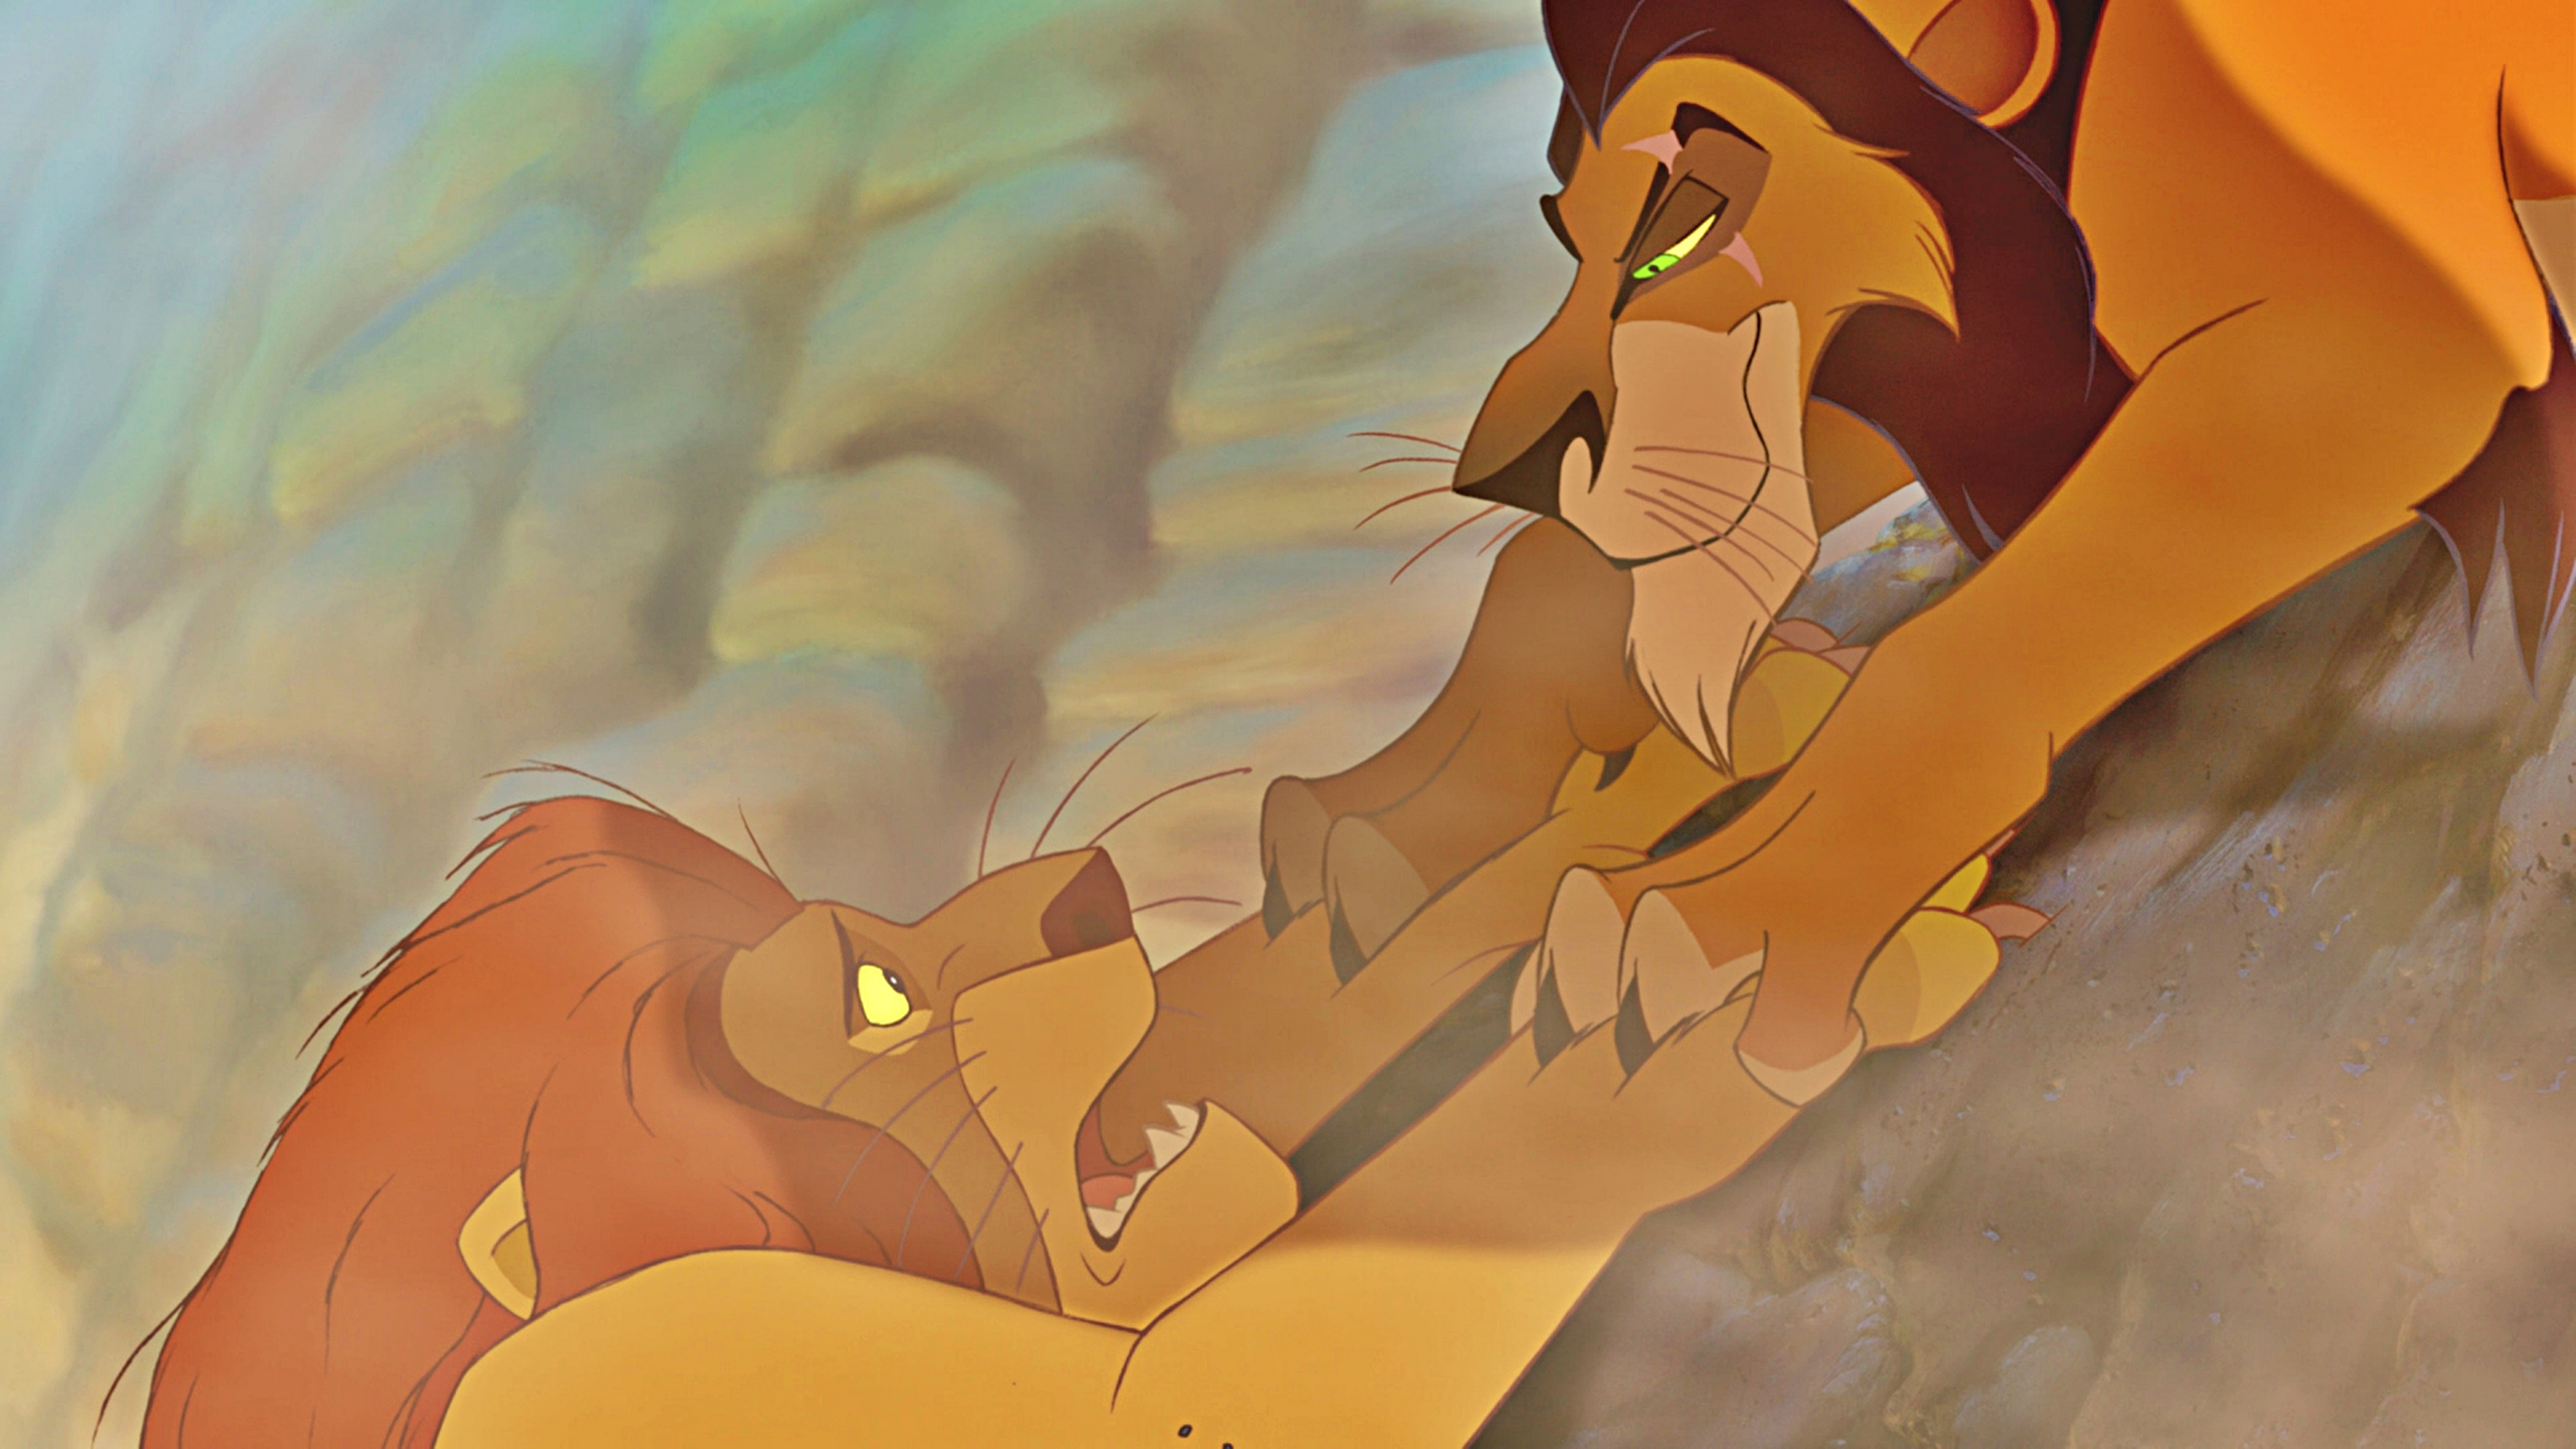 The lion king mufasa and scar - photo#15